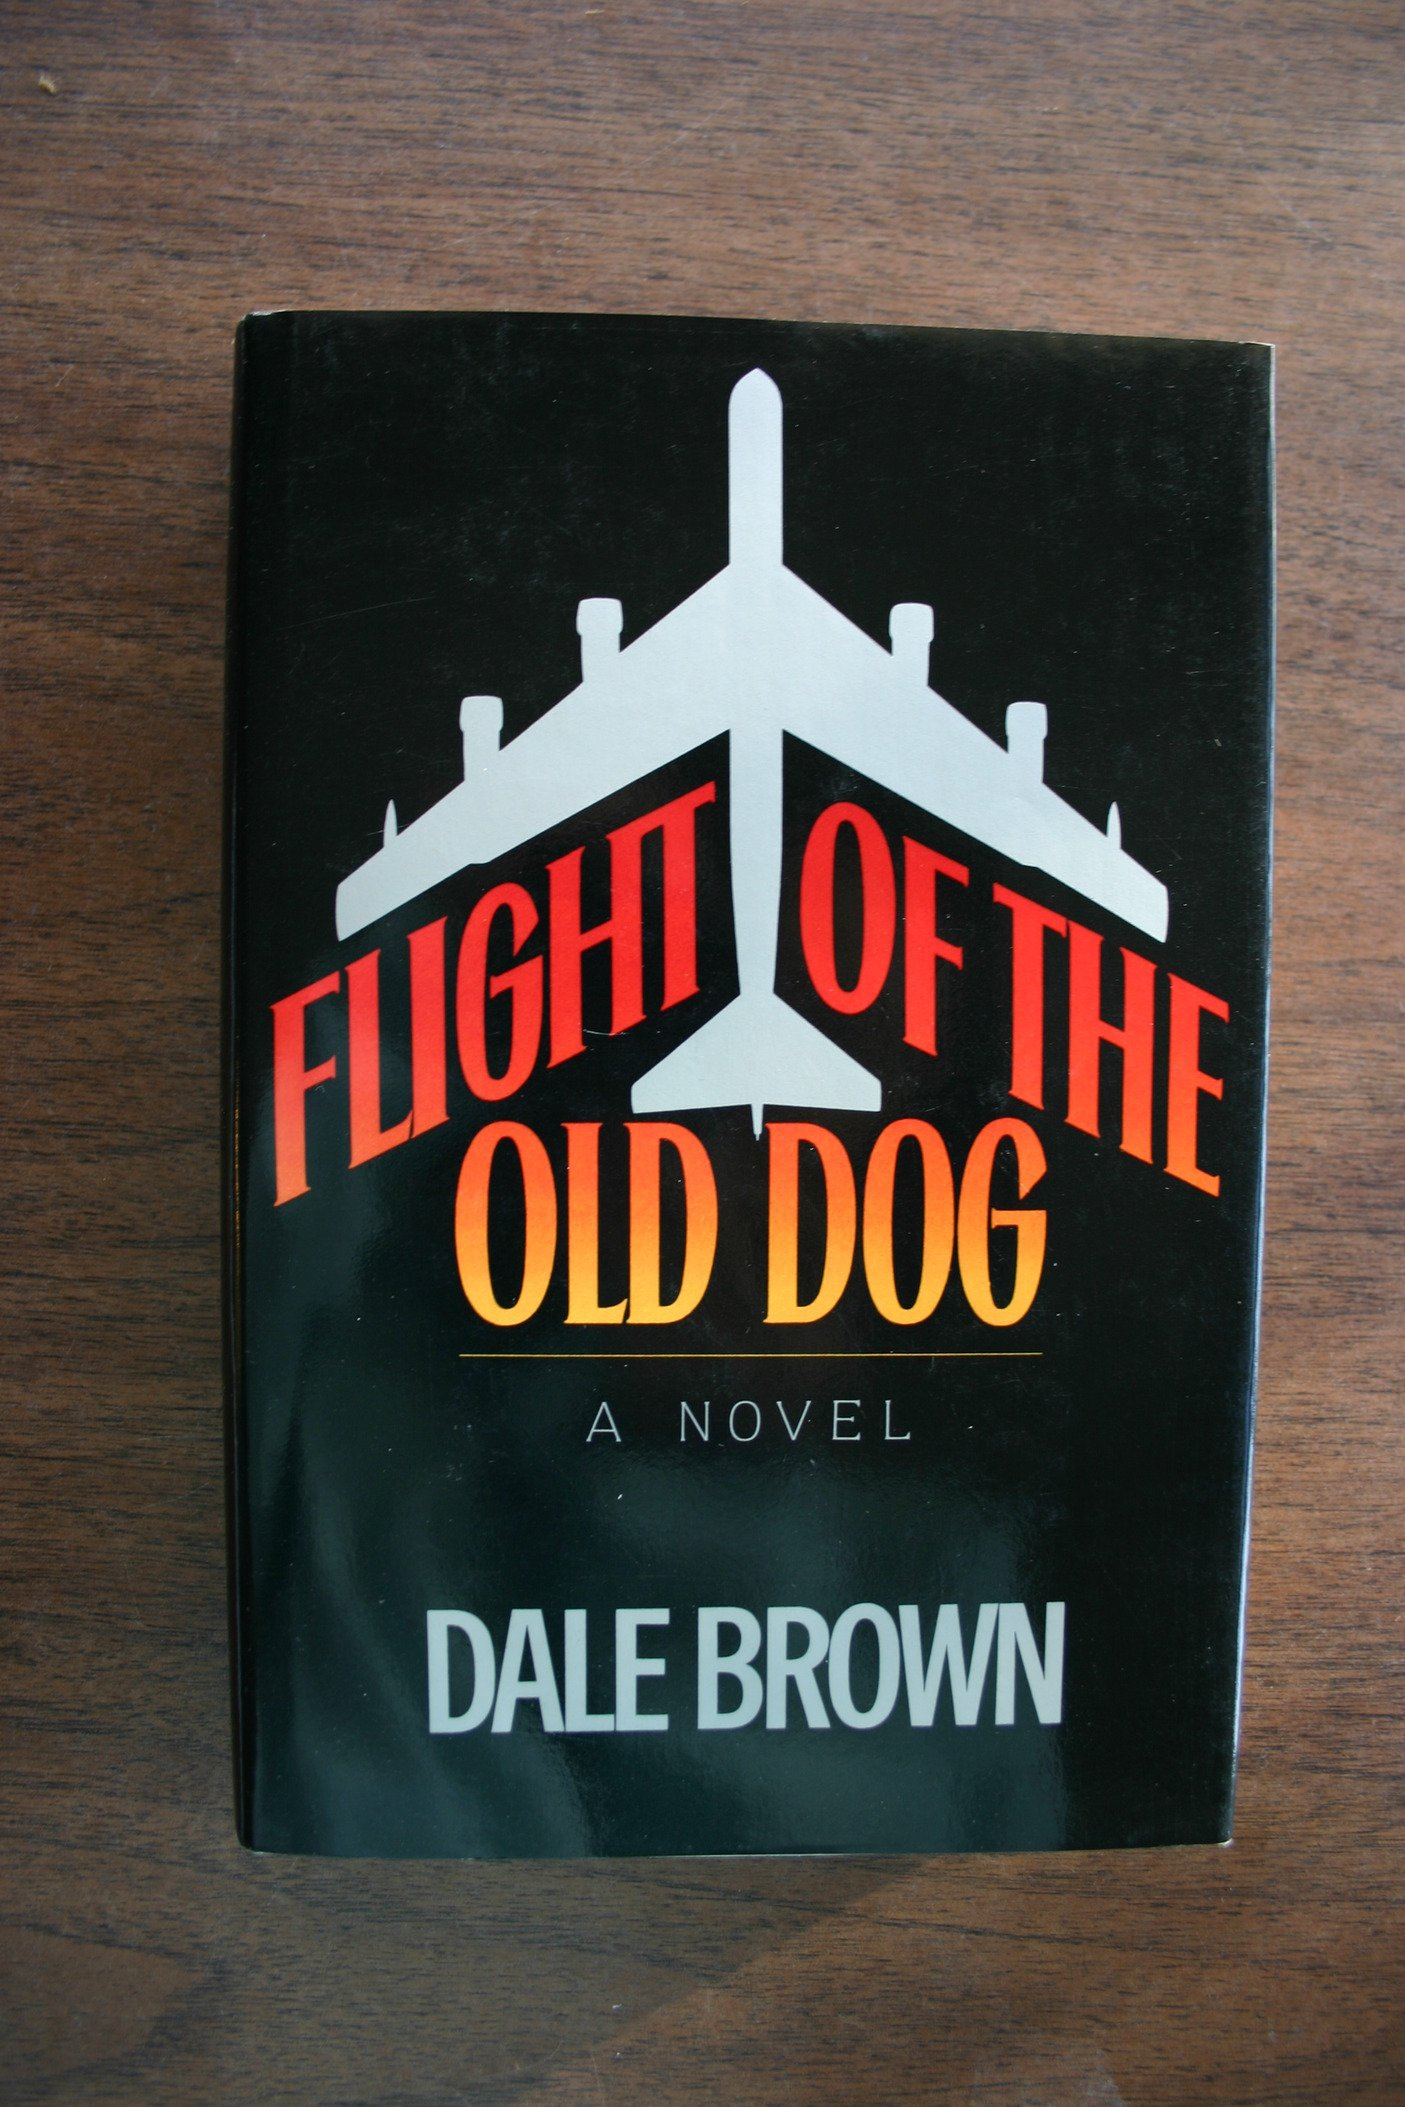 Amazon.com: Flight of the Old Dog (9781556110344): Brown, Dale: Books